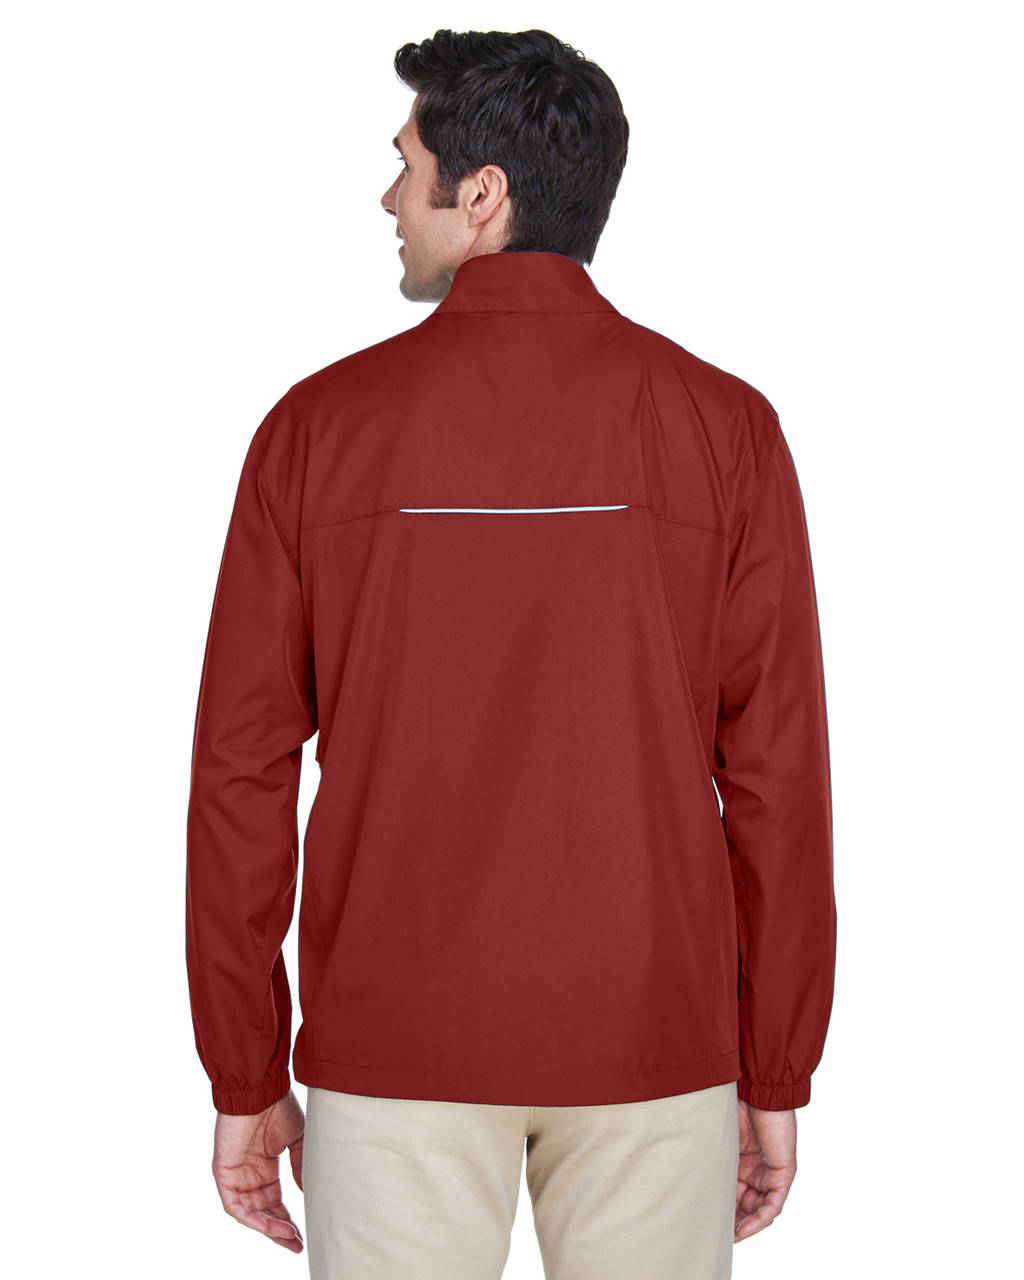 Classic Red - Back, 88183T Ash City - Core 365 Tall Motivate Unlined Lightweight Jacket | Blankclothing.ca